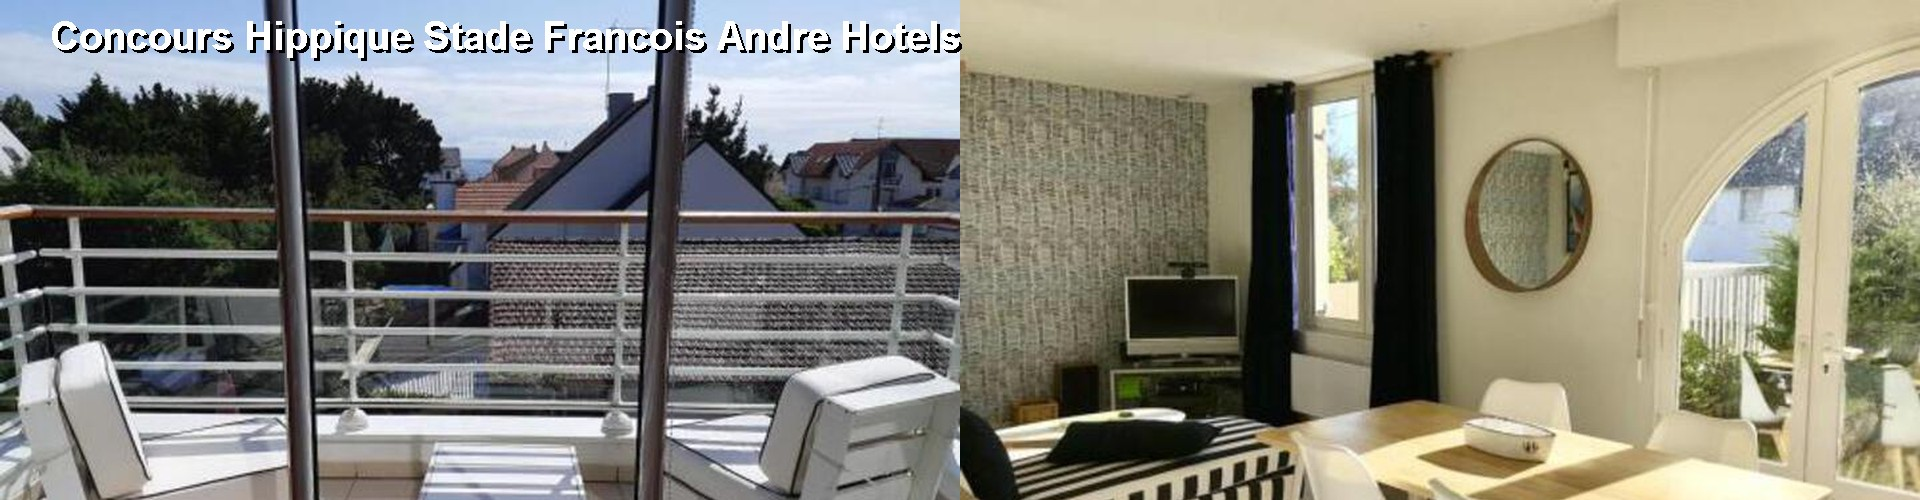 5 Best Hotels near Concours Hippique Stade Francois Andre